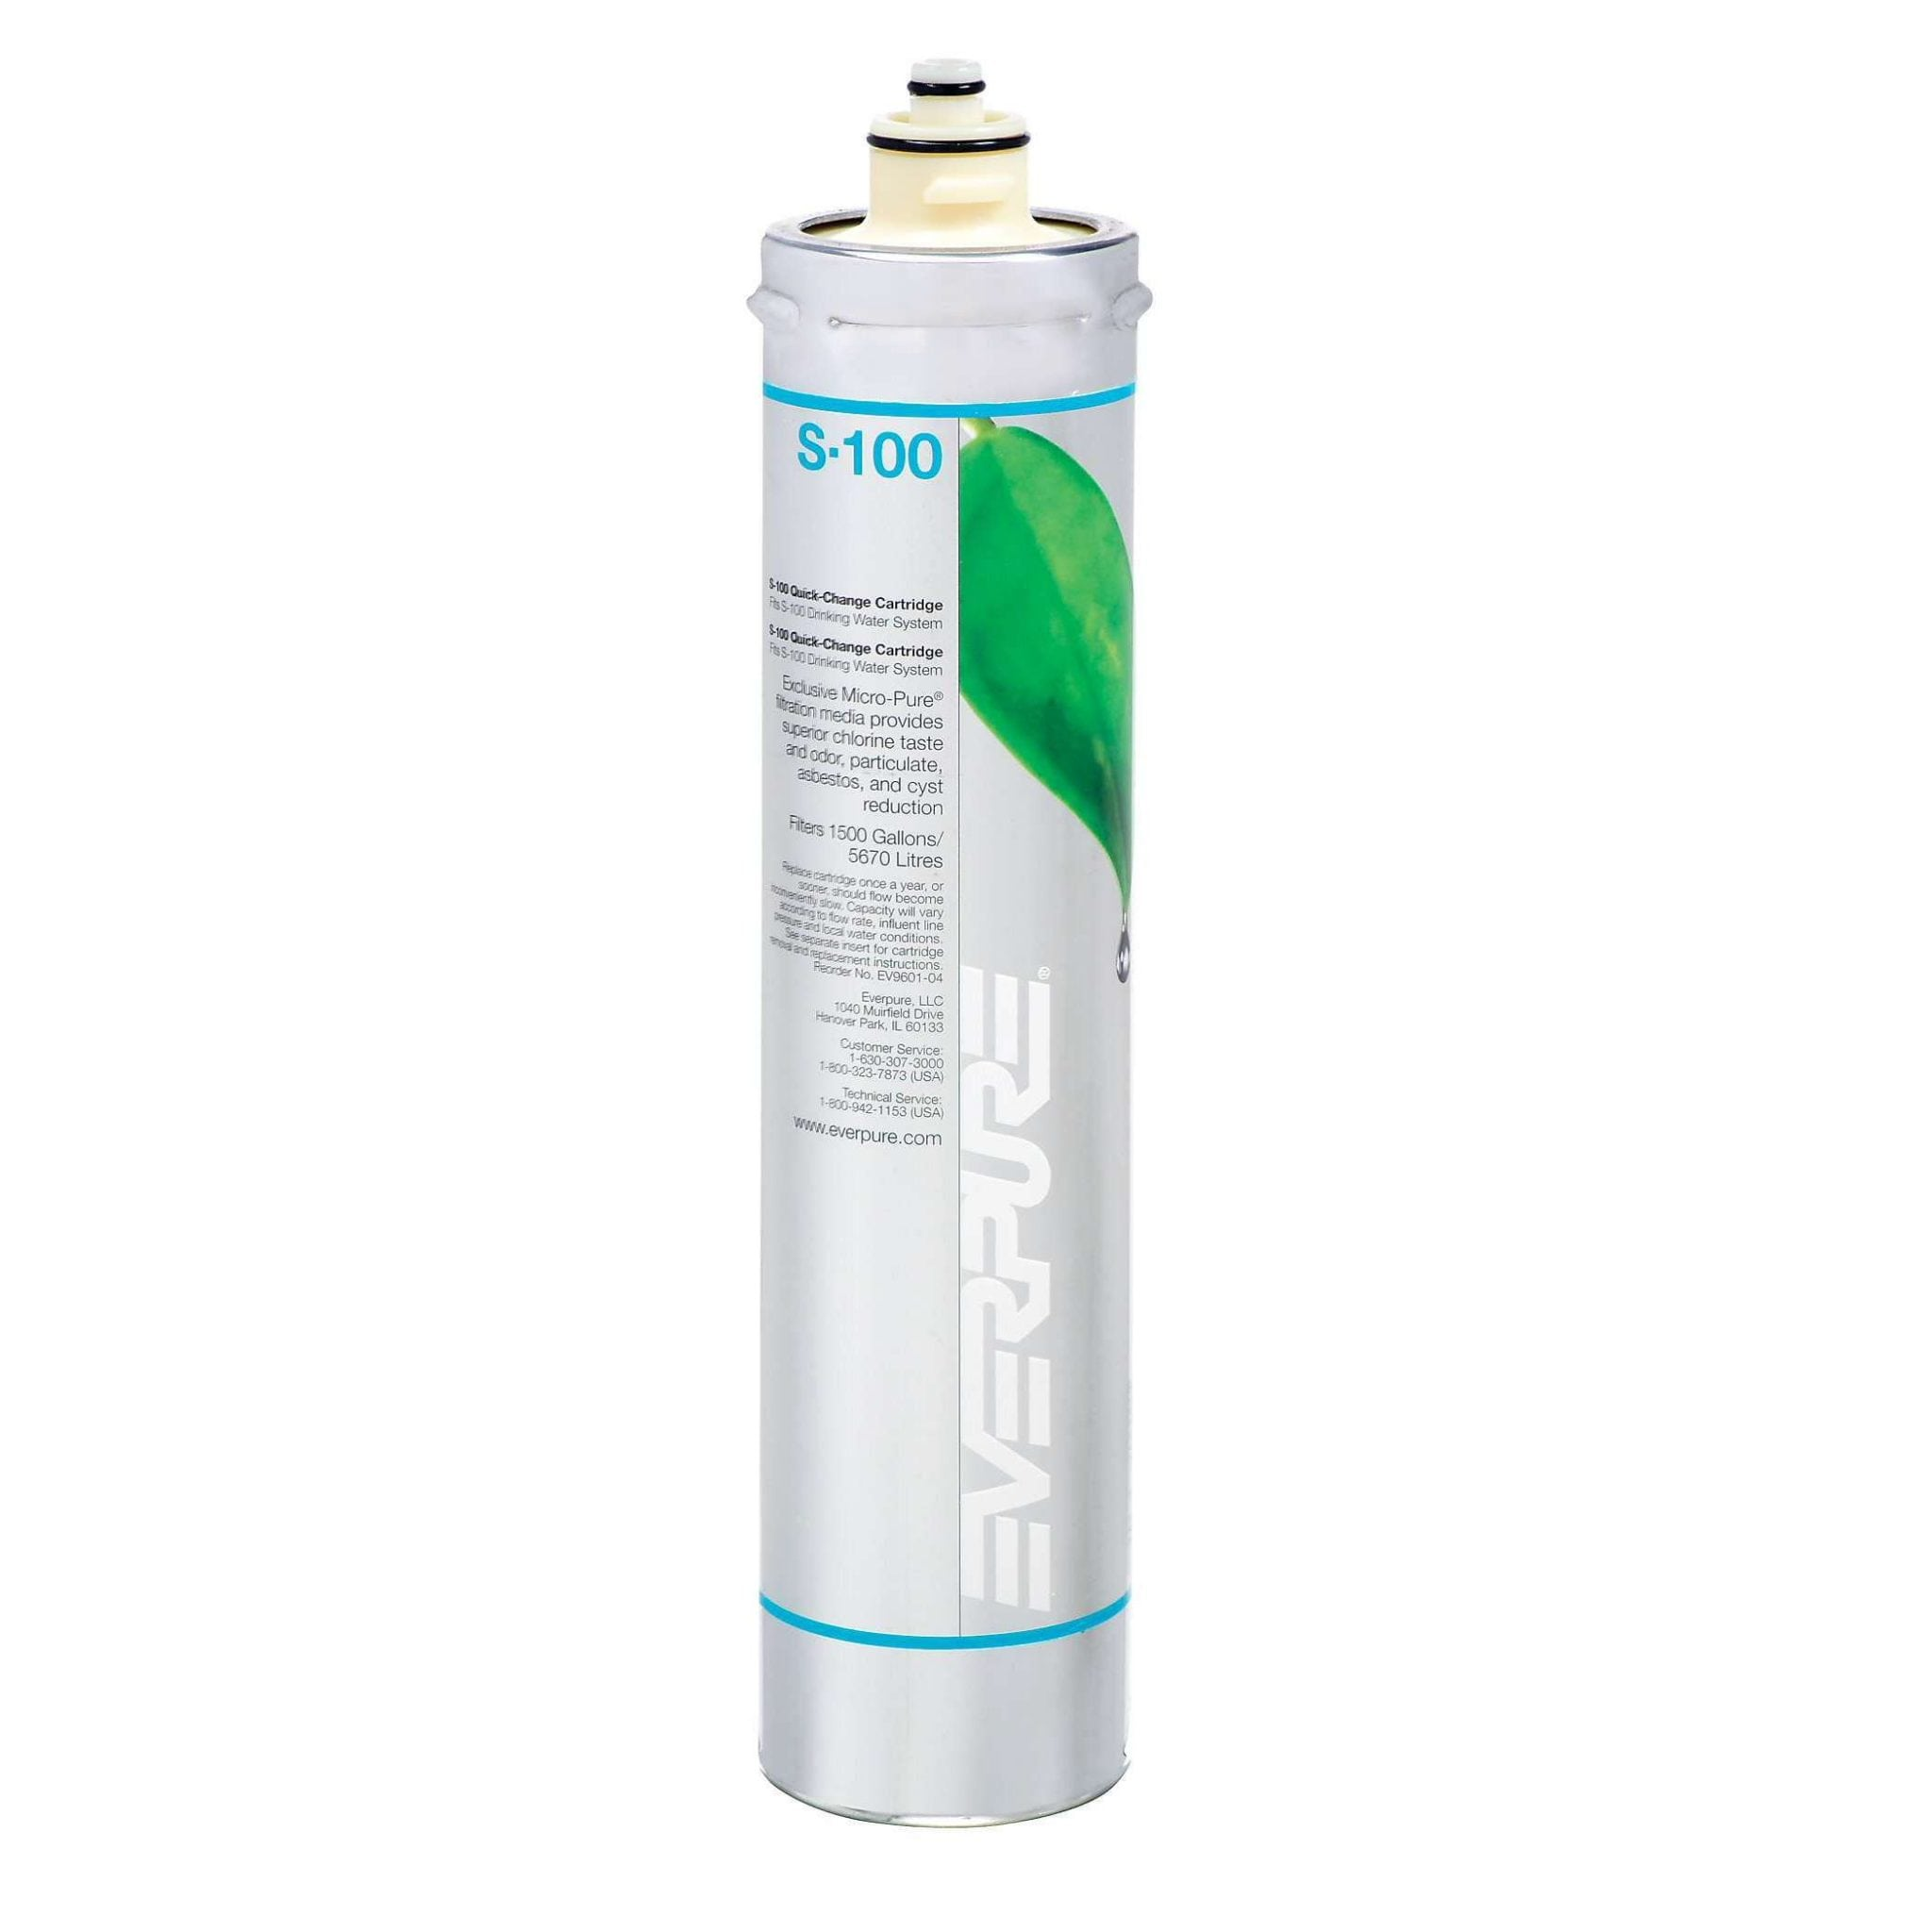 S-100-replacement-cartridge